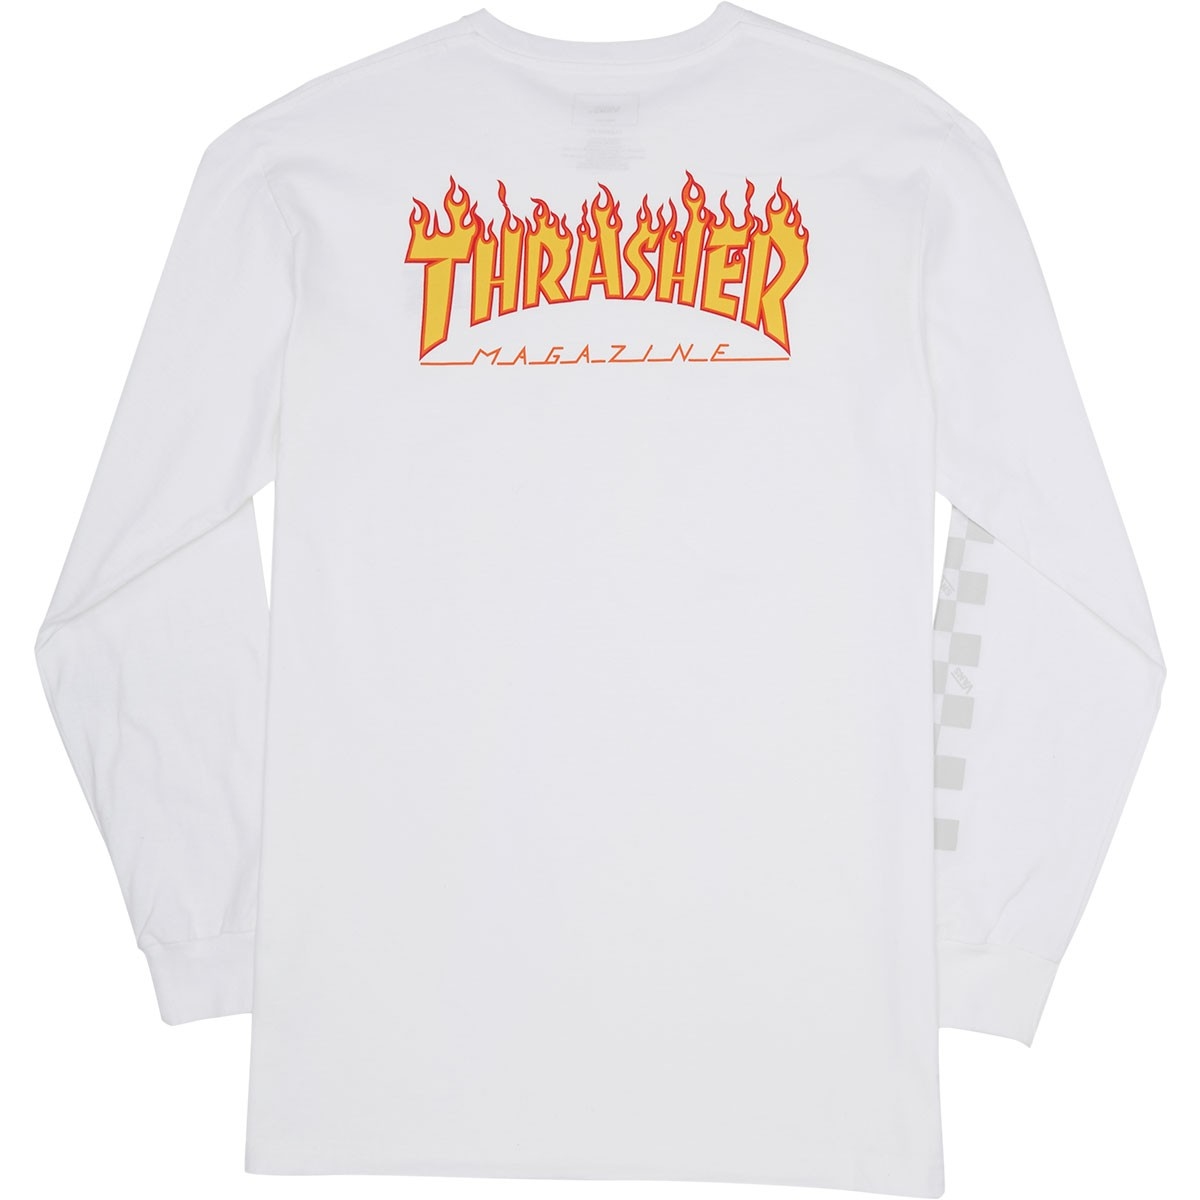 Vans X Thrasher Checker Longsleeve T-Shirt - White 08eb83db5d47